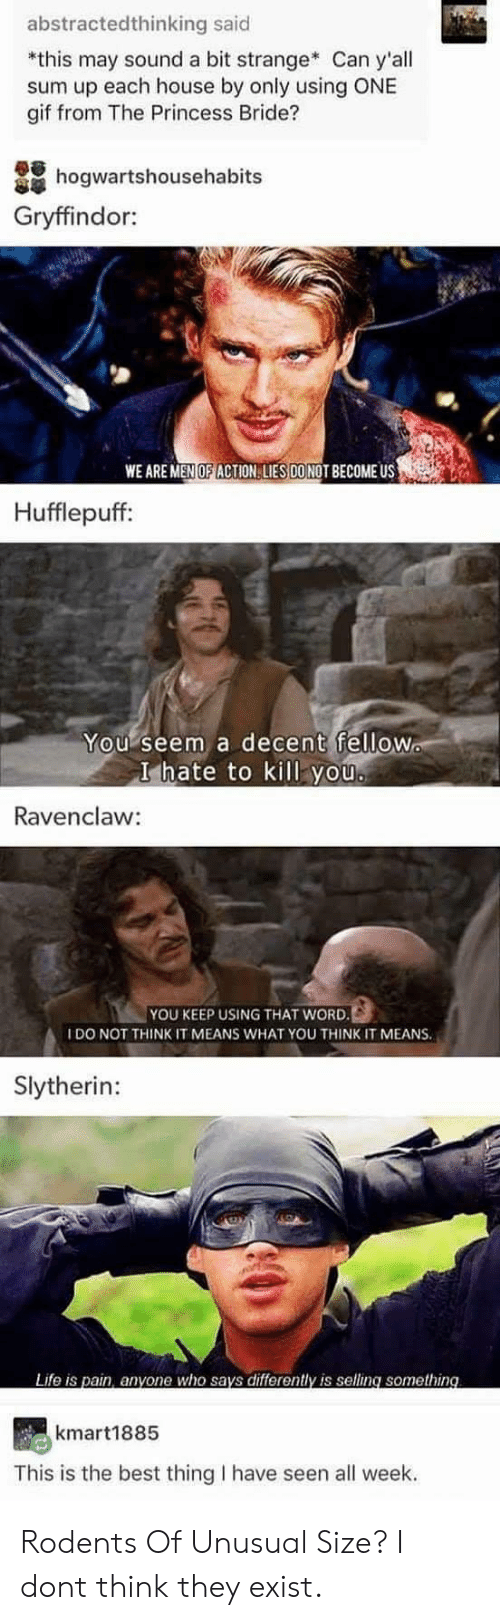 Gryffindor: abstractedthinking said  *this may sound a bit strange Can y'all  sum up each house by only using ONE  gif from The Princess Bride?  hogwartshousehabits  Gryffindor:  WE ARE MEN OF ACTION LIES DONOT BECOME US  Hufflepuff:  You seem a decent fellow  I hate to kill you  Ravenclaw:  YOU KEEP USING THAT WORD.  IDO NOT THINK IT MEANS WHAT YOU THINK IT MEANS.  Slytherin:  Life is pain, anyone who says differently is selling something  kmart1885  This is the best thing I have seen all week. Rodents Of Unusual Size? I dont think they exist.